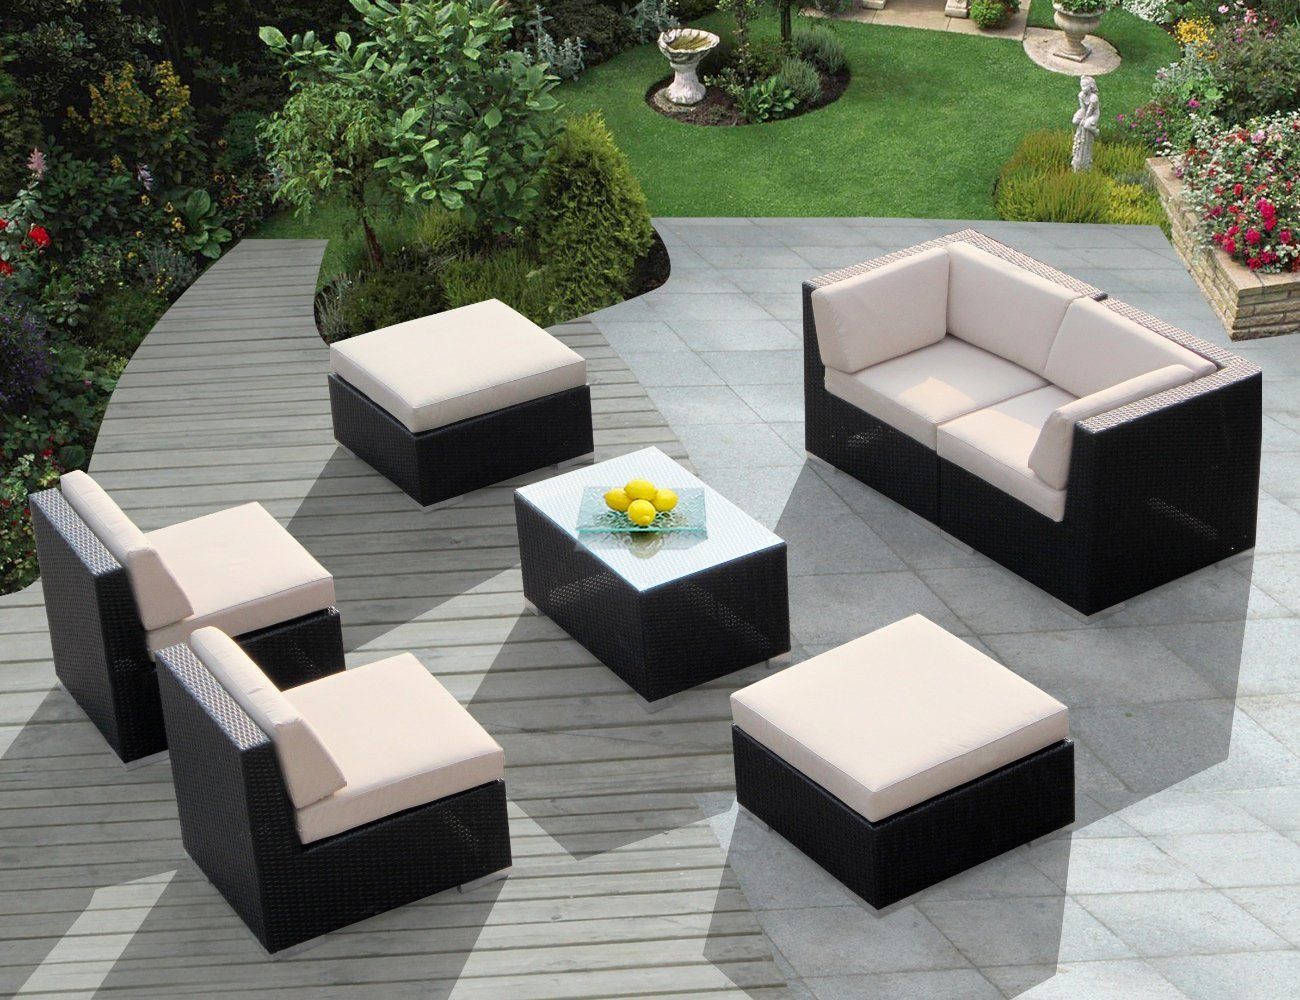 Strathwood Outdoor Patio Furniture | Buy Cheap Strathwood ...